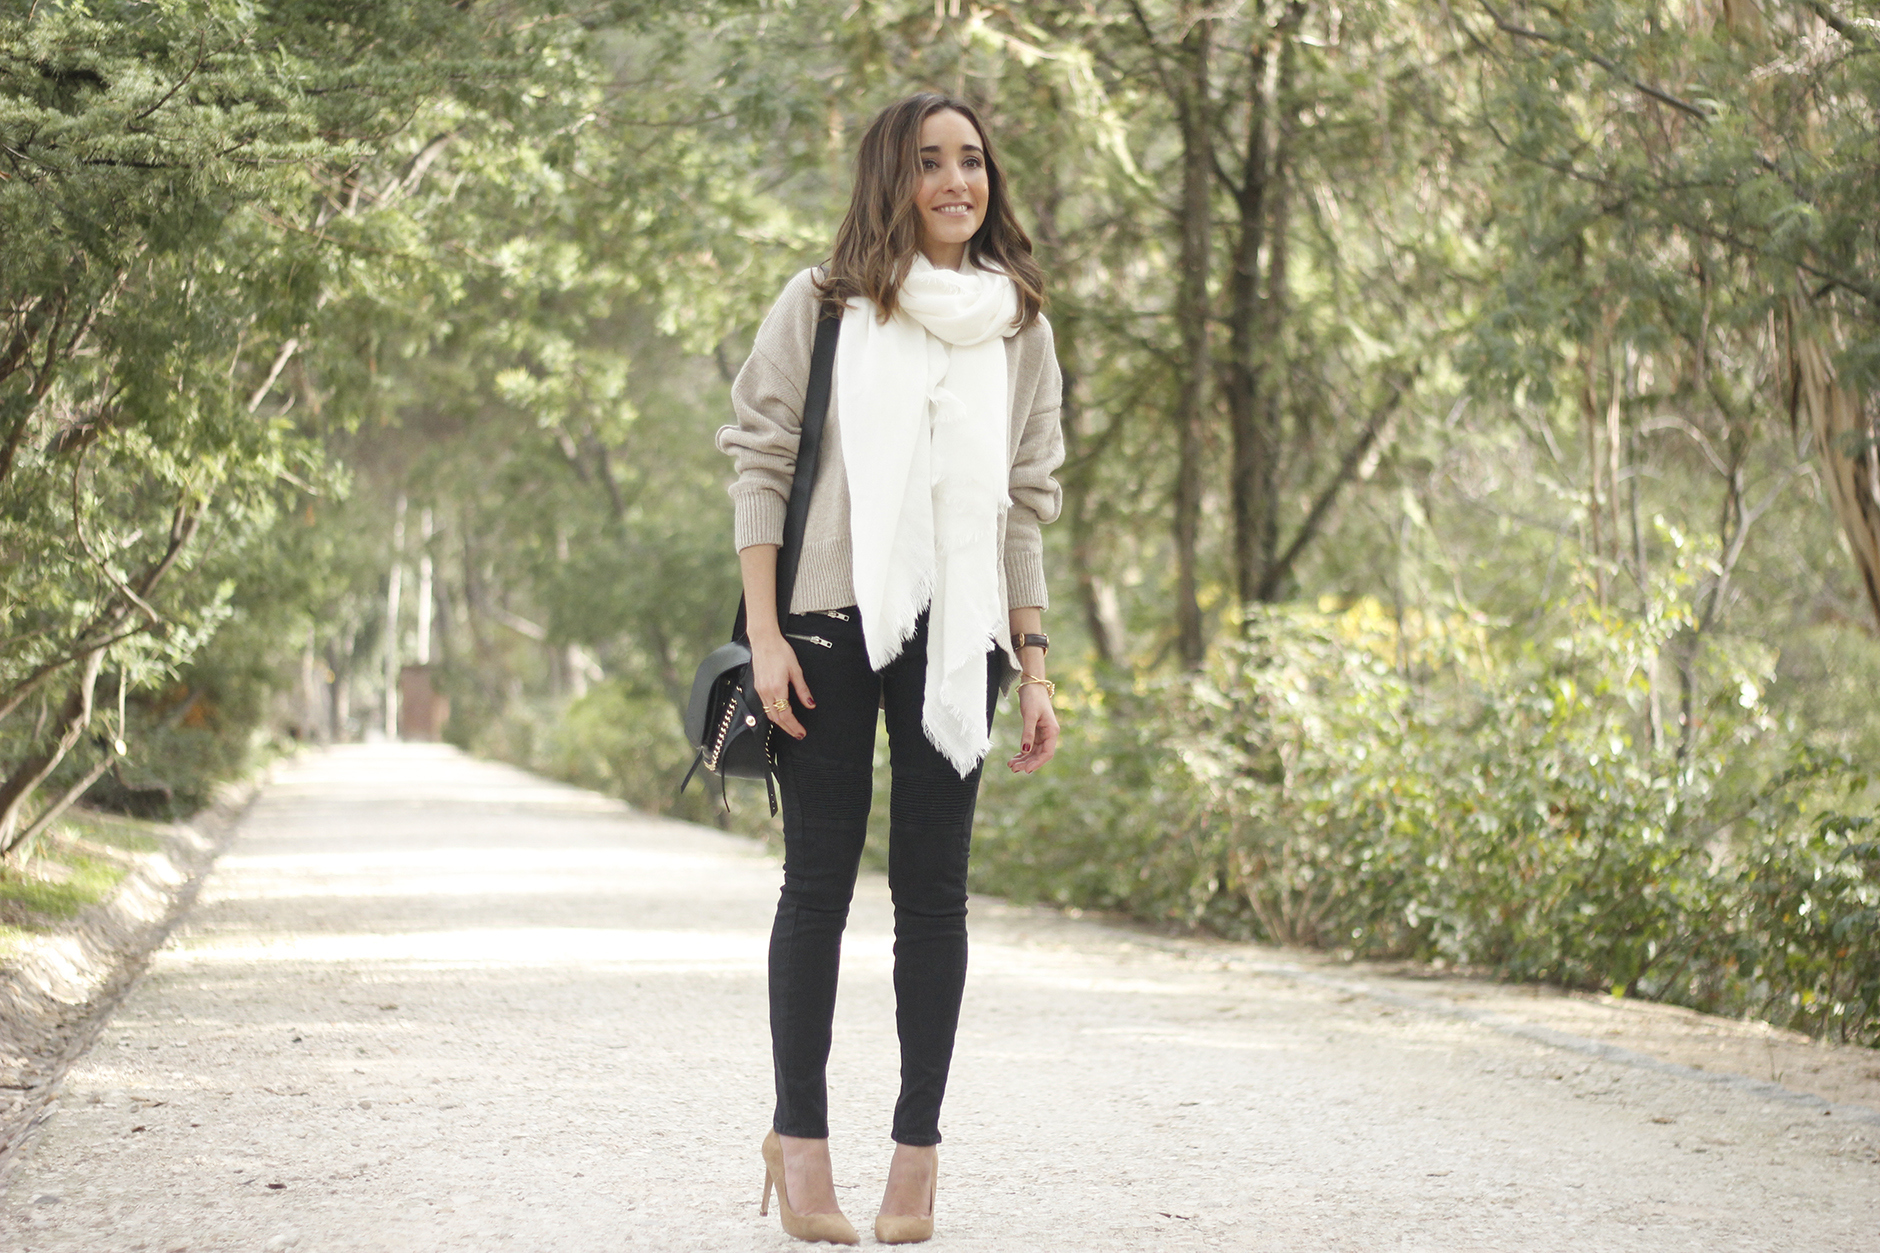 Beige Sweater Black Jeans Nude Heels White Scarf Coach Bag Outfit Style05